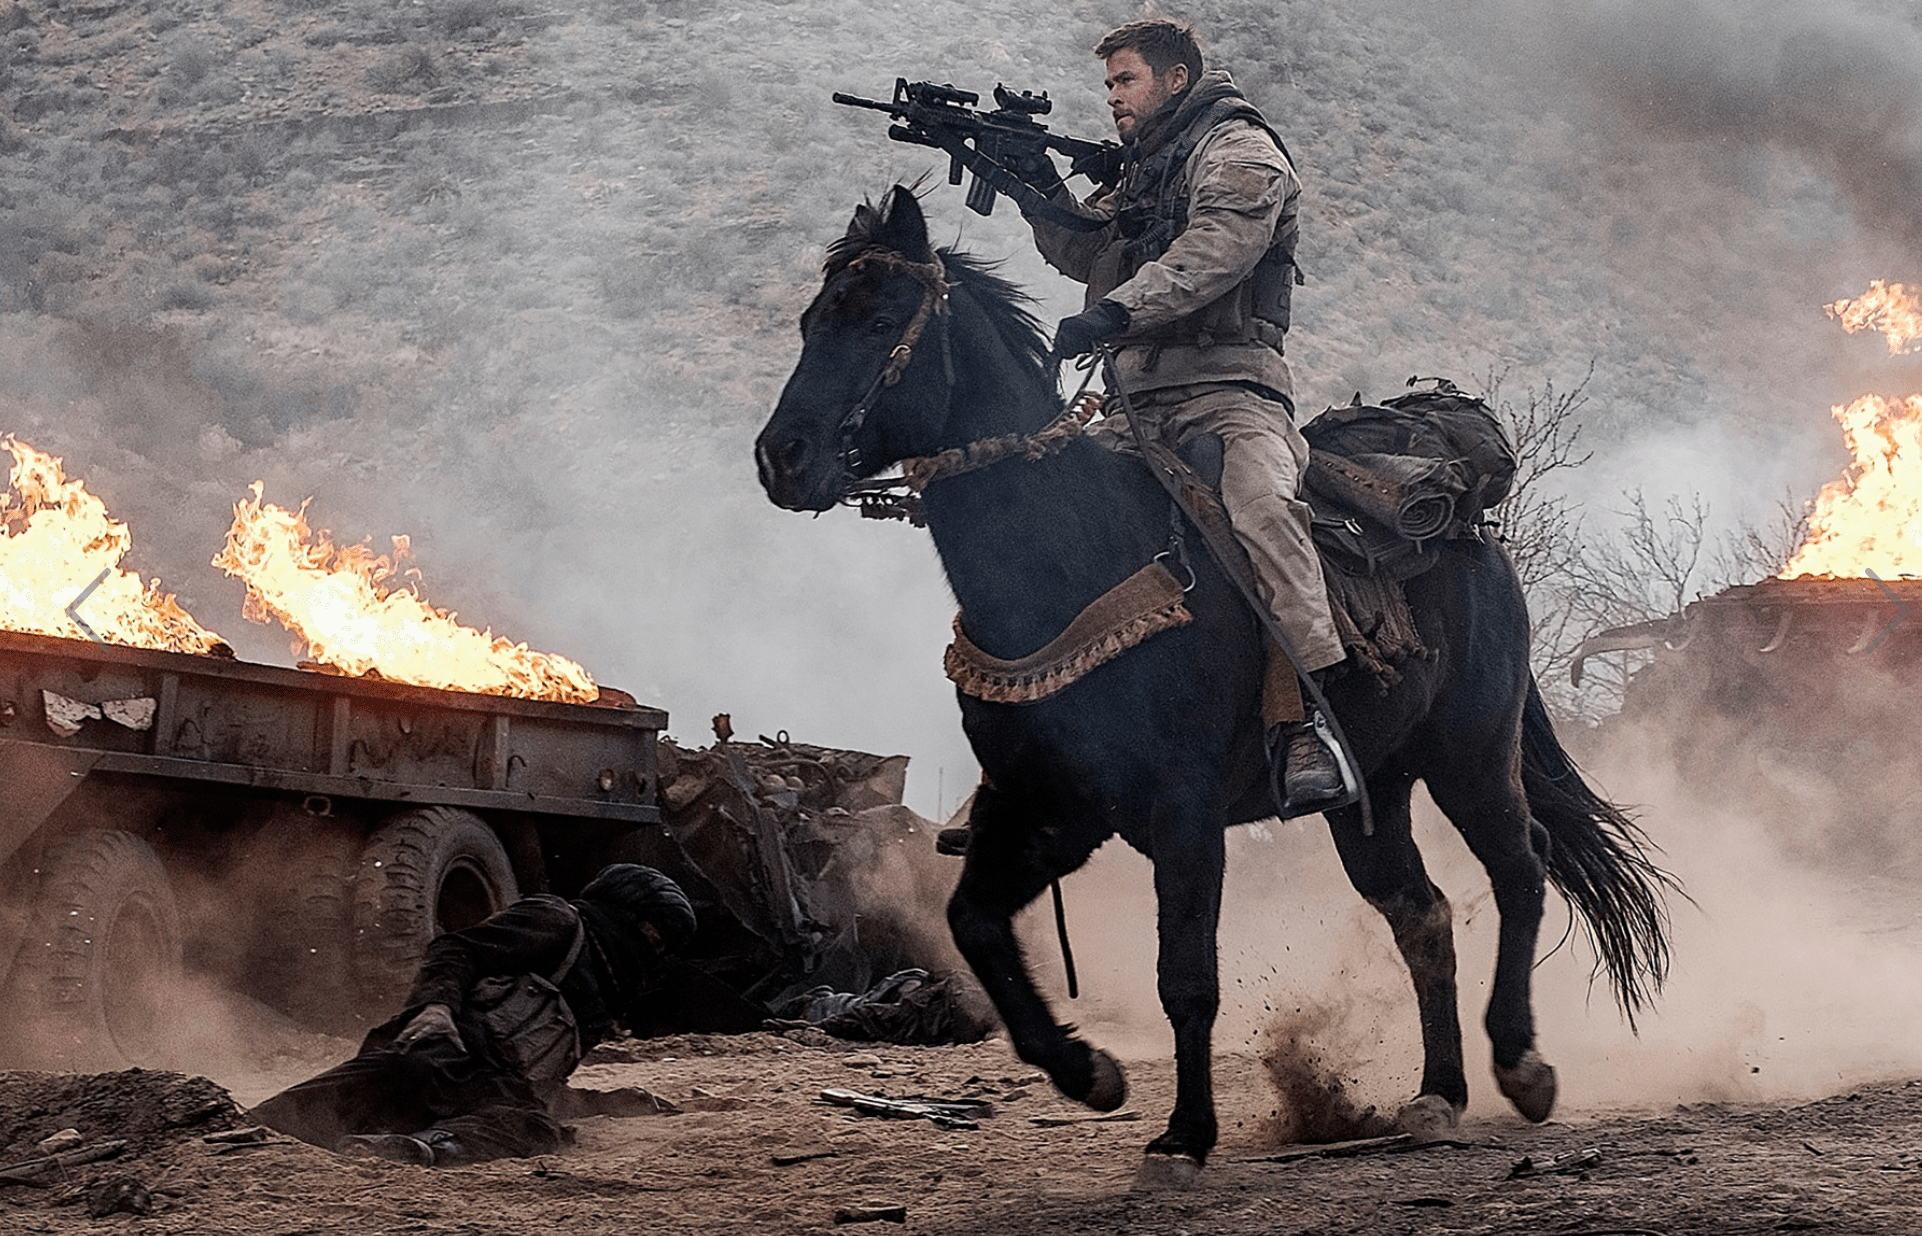 12 Strong Movie Review and Chris Hemsworth - simplytodaylife.com